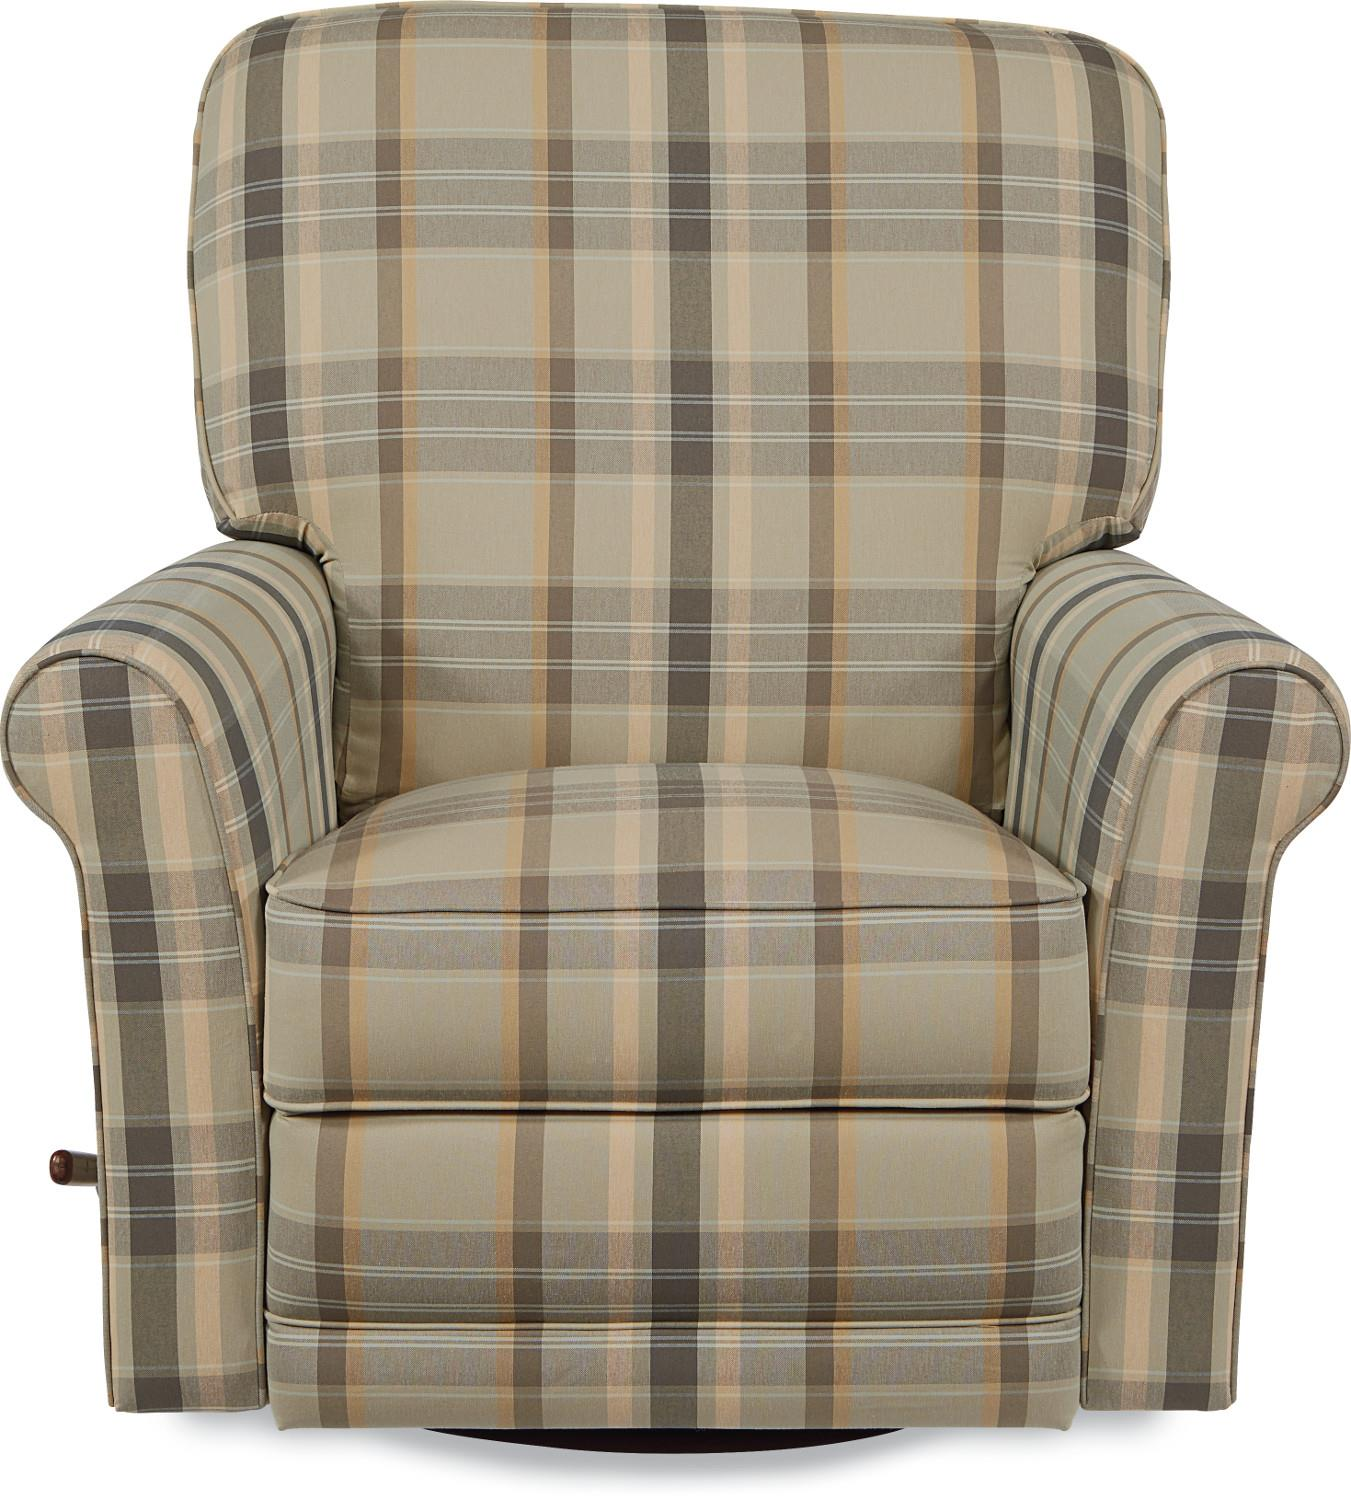 Addison RECLINA-GLIDER® Swivel Recliner by La-Z-Boy at H.L. Stephens